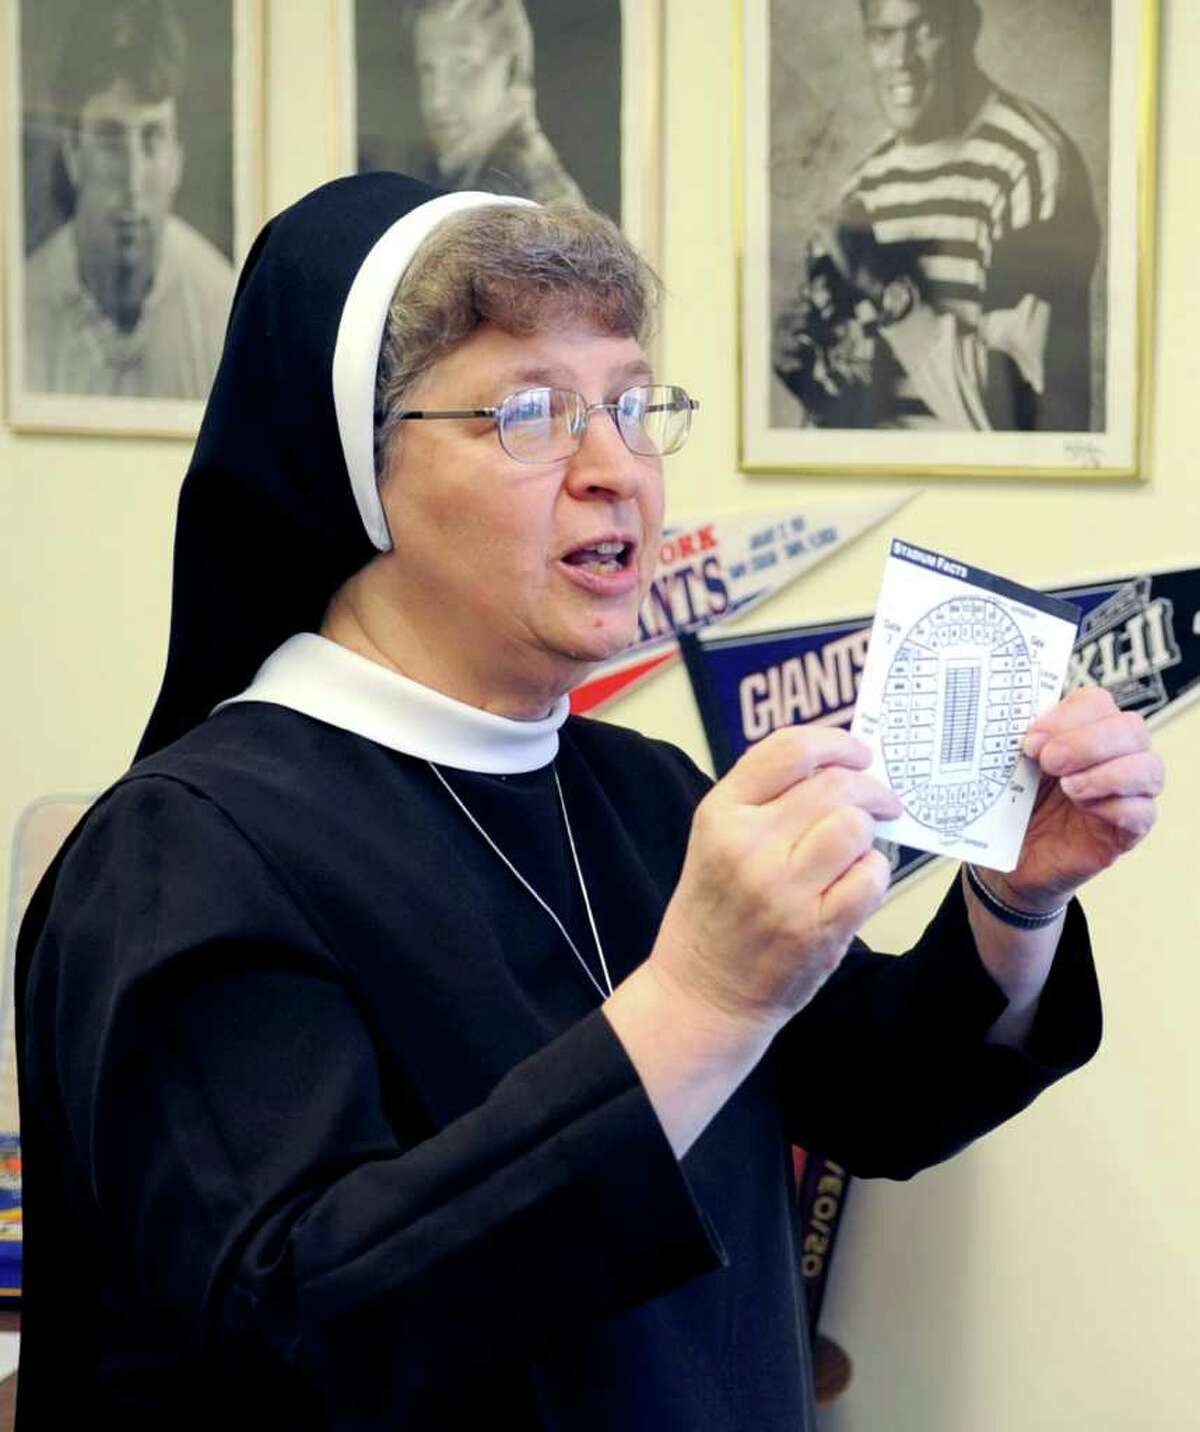 Sister Carol Ann shows photos and memorabilia of the New York Giants, her favorite team, in her office at Villa Maria Education Center in Stamford on Wednesday, February 2, 2012.